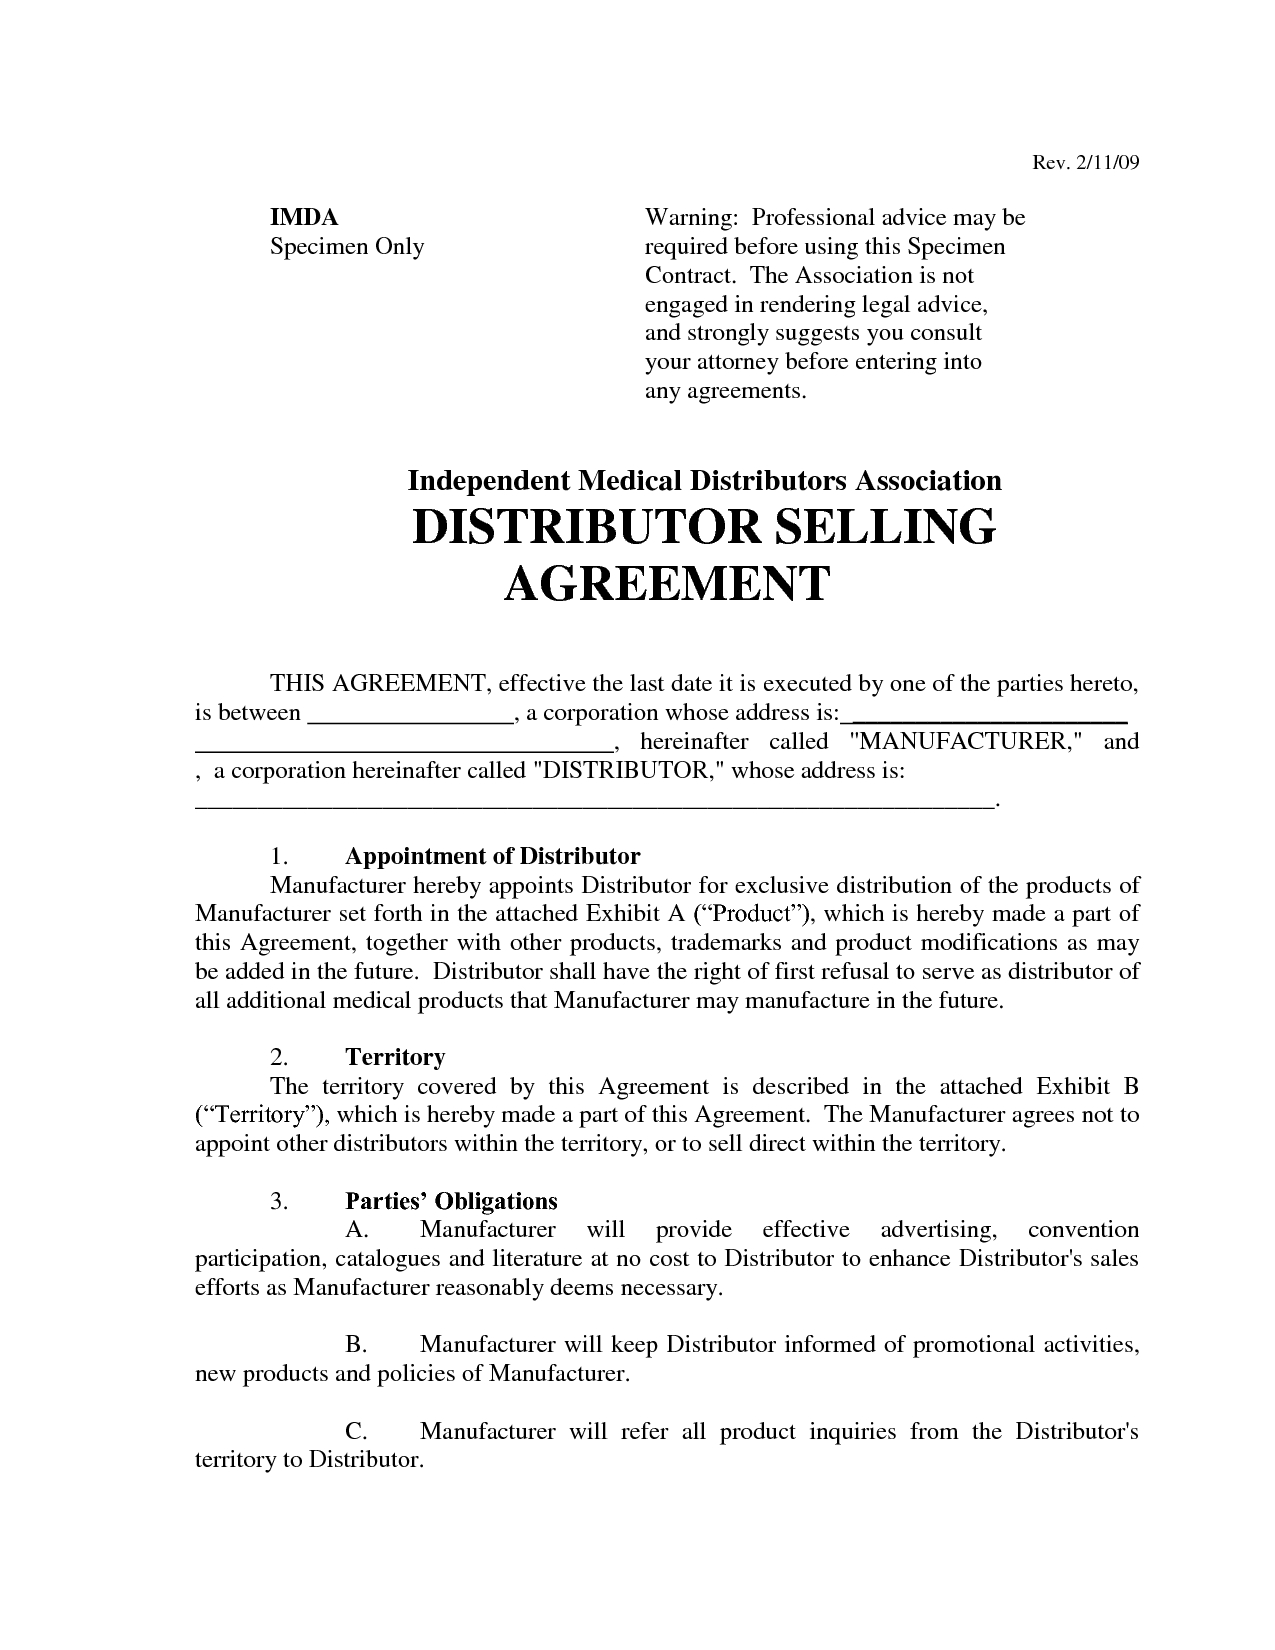 Distributor Agreement Sample Contract Top 5 Free Distributor Agreement Templates Word Templates Excel